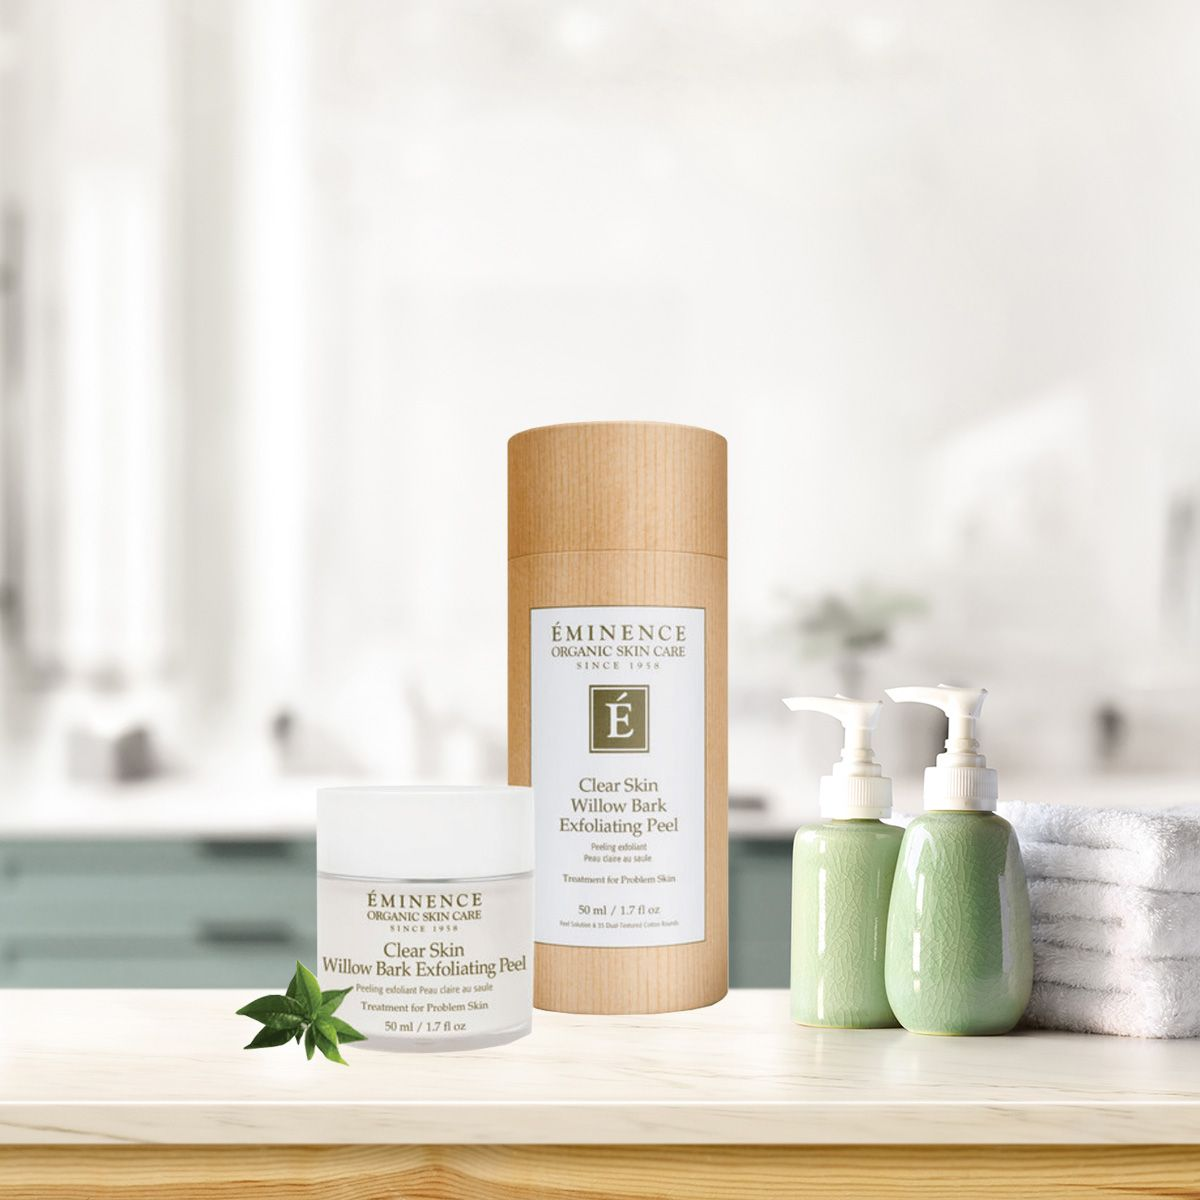 Eminence Clear Skin Willow Bark Exfoliating Peel 50ml In 2020 Exfoliating Peel Clear Skin Exfoliating